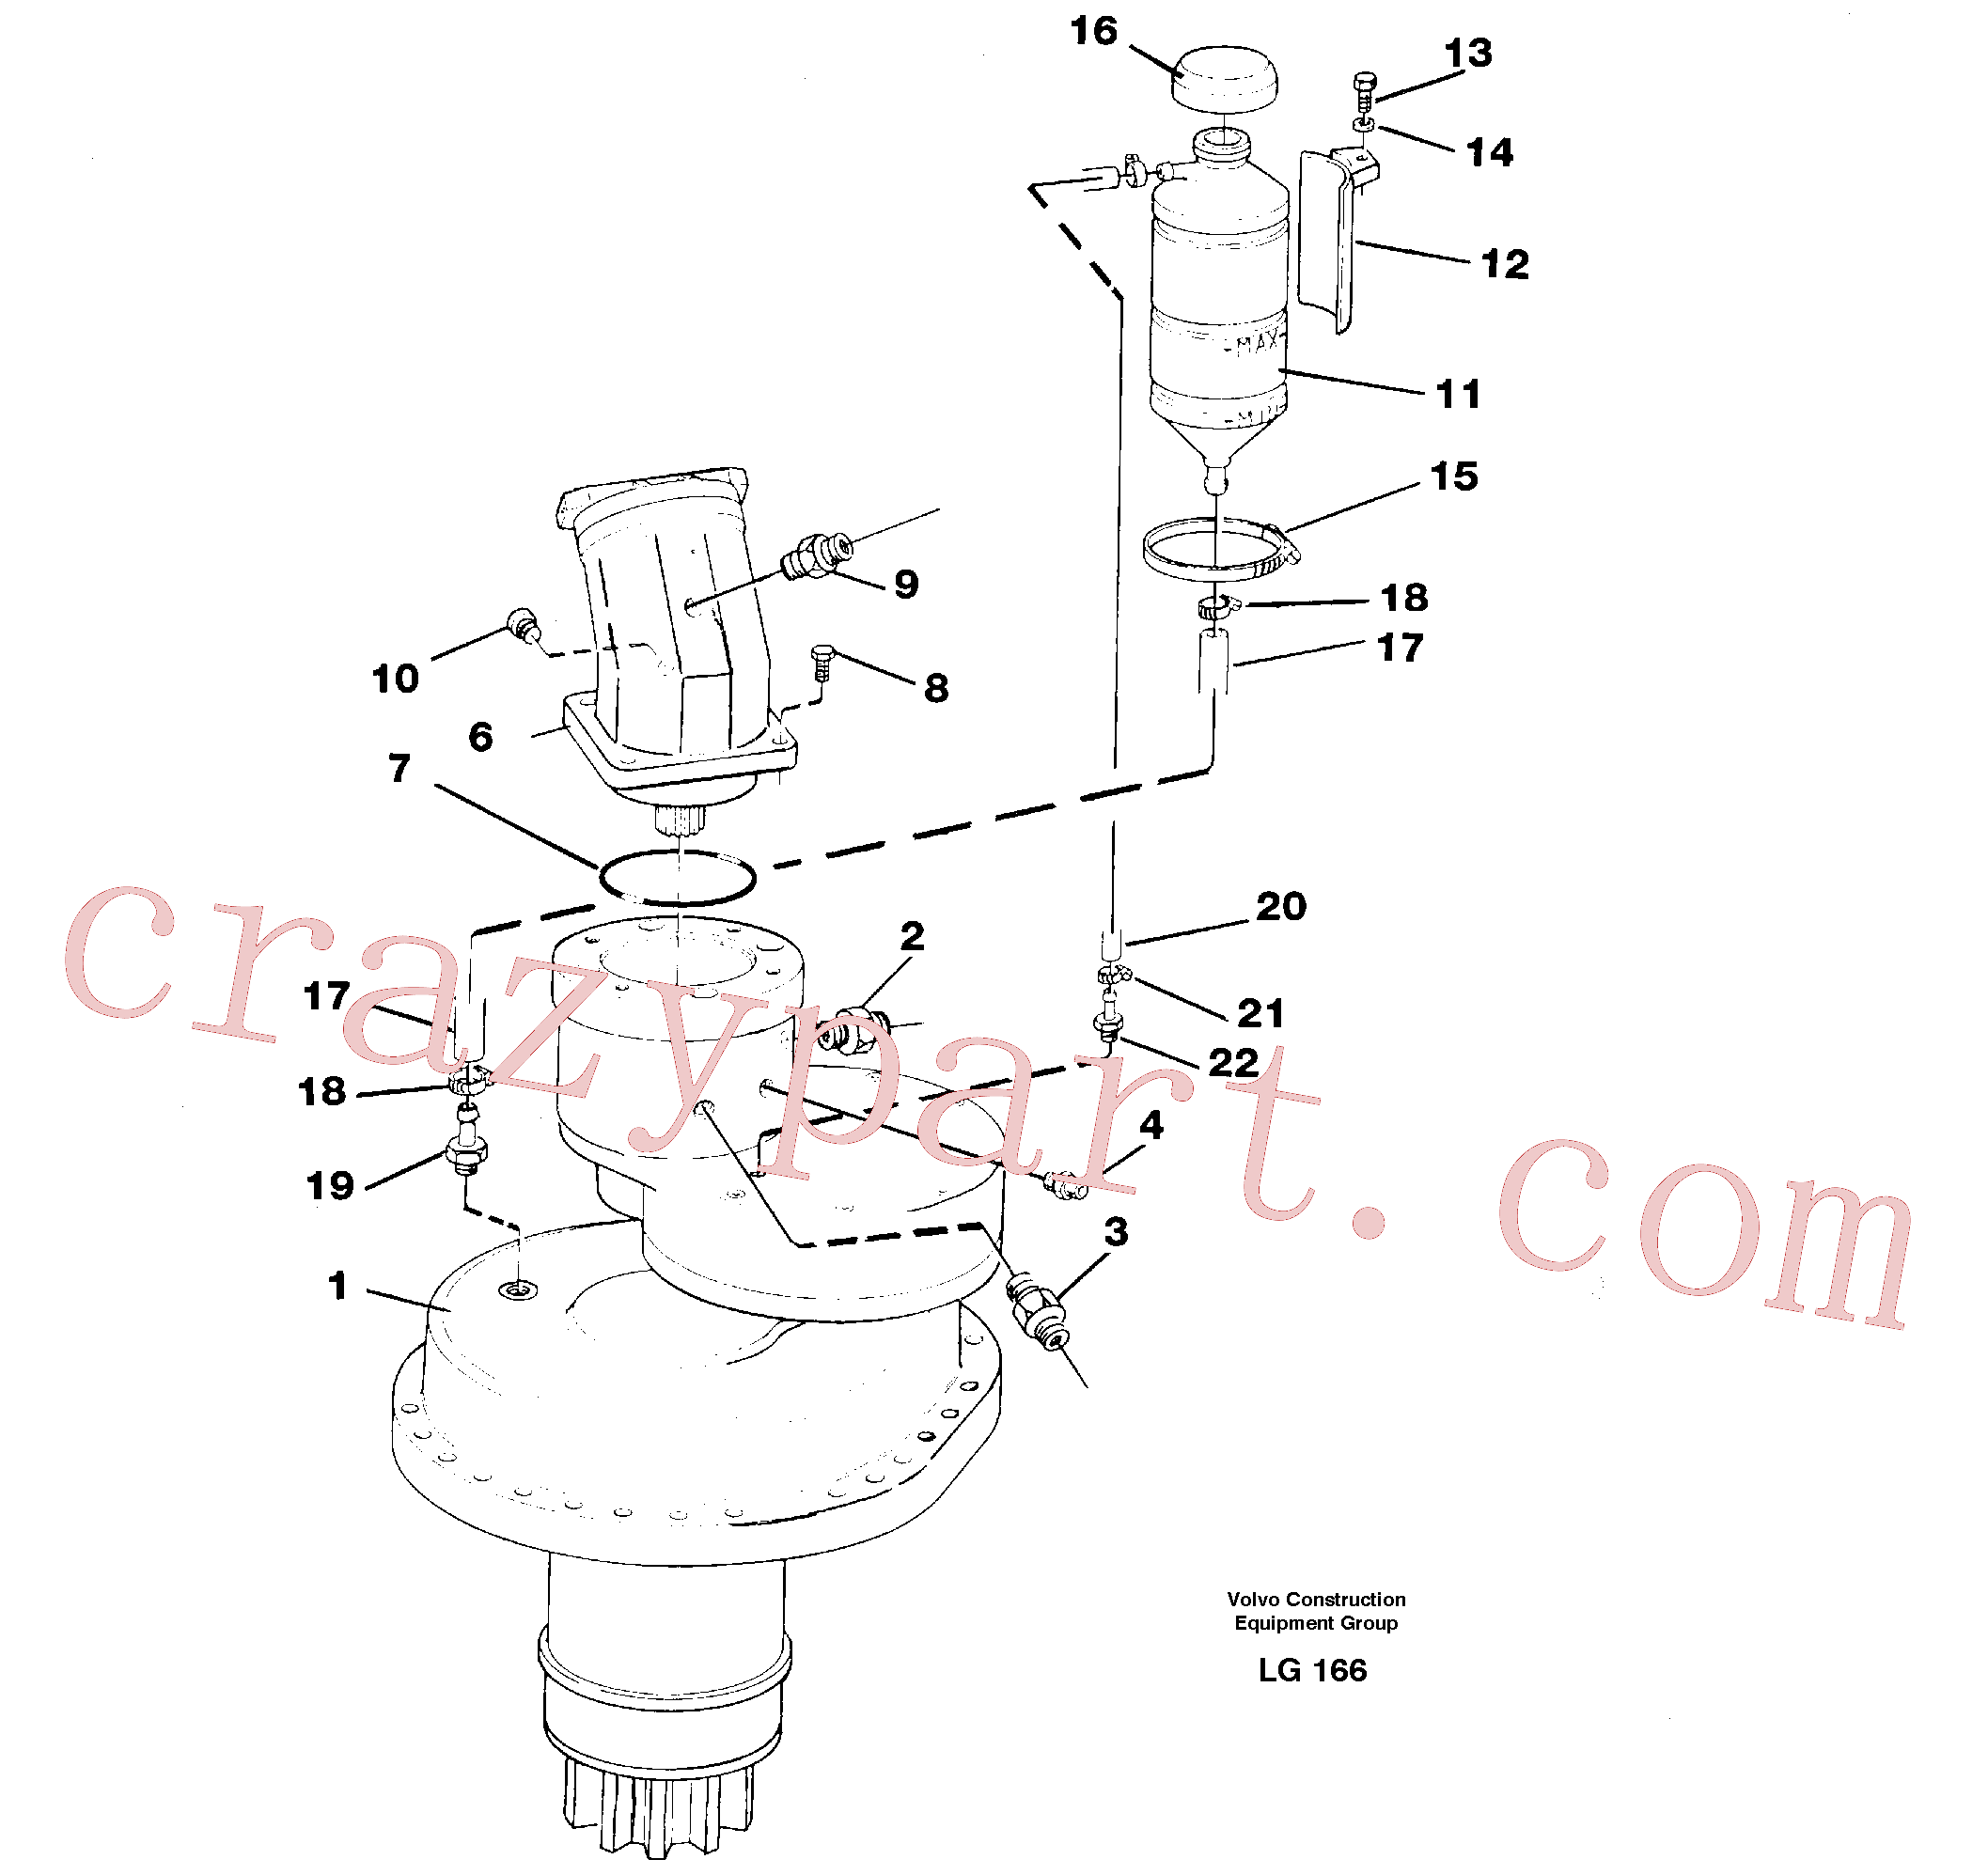 VOE14012414 for Volvo Slewing gear box, compl.(LG166 assembly)